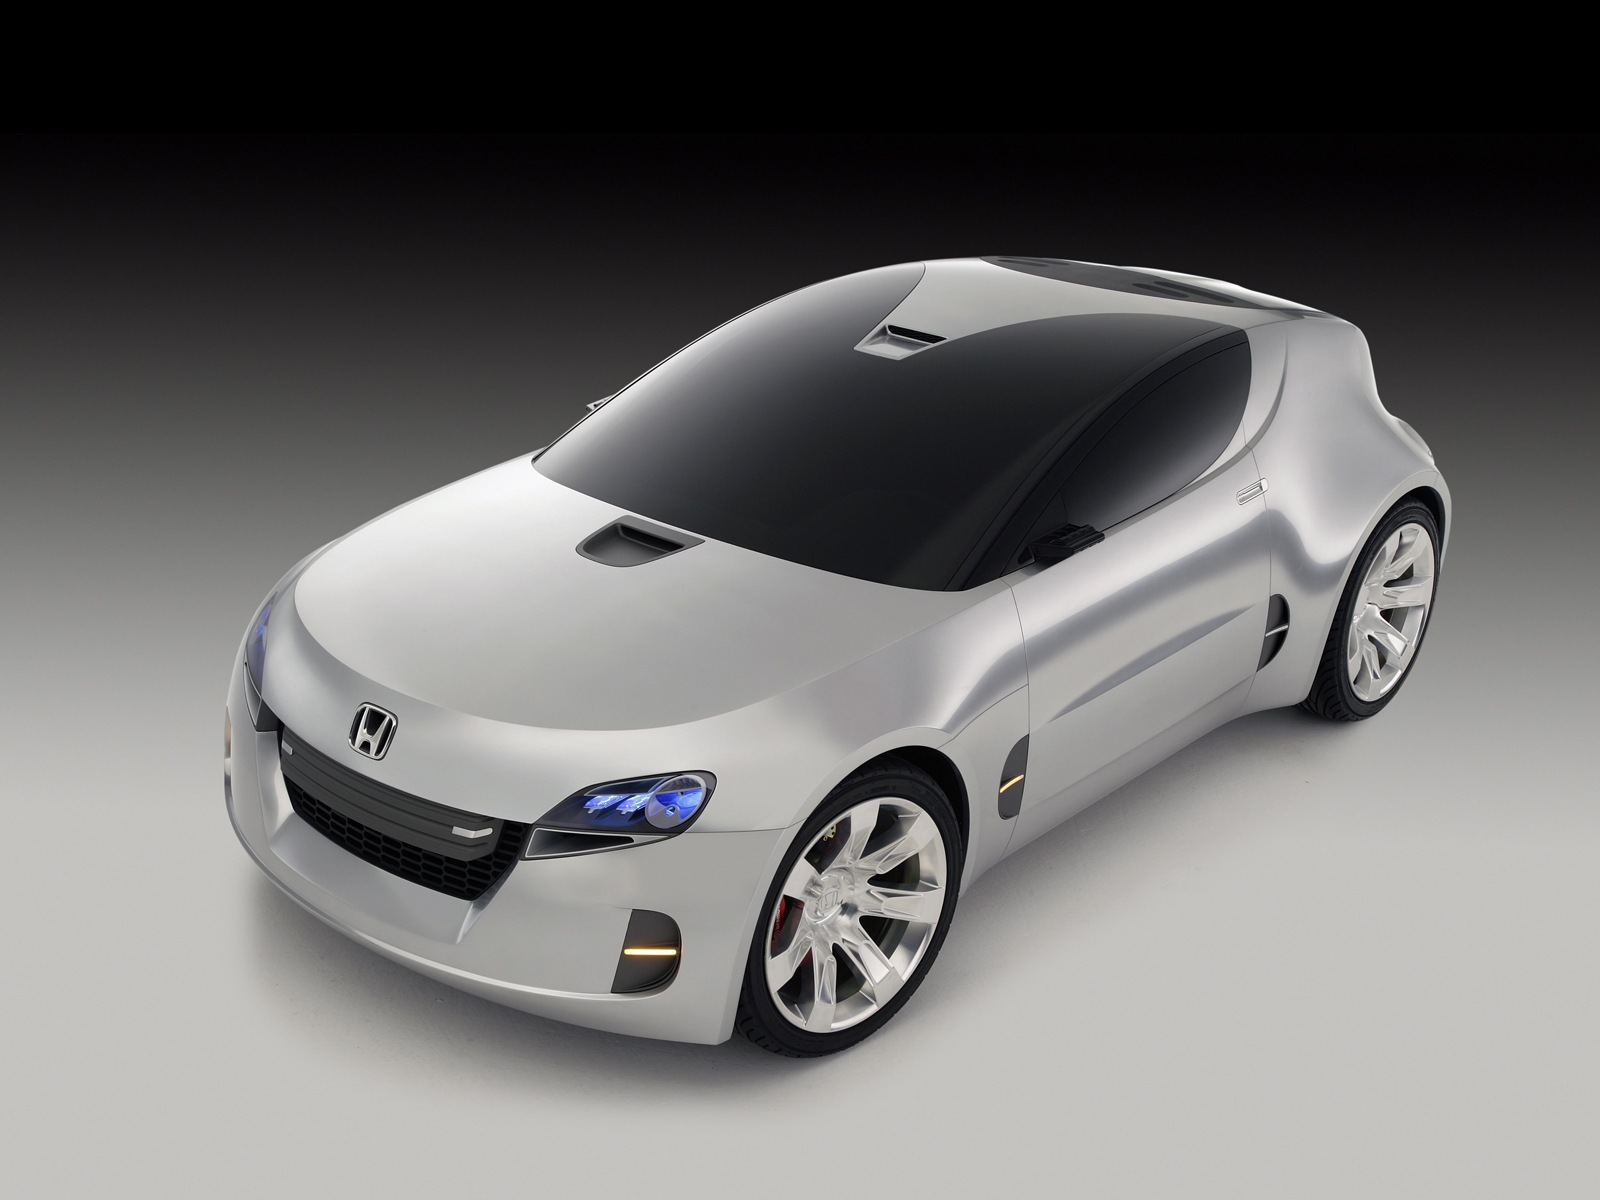 HONDA CONCEPT CARS WALLPAPERS GREY COLOR Backgrounds